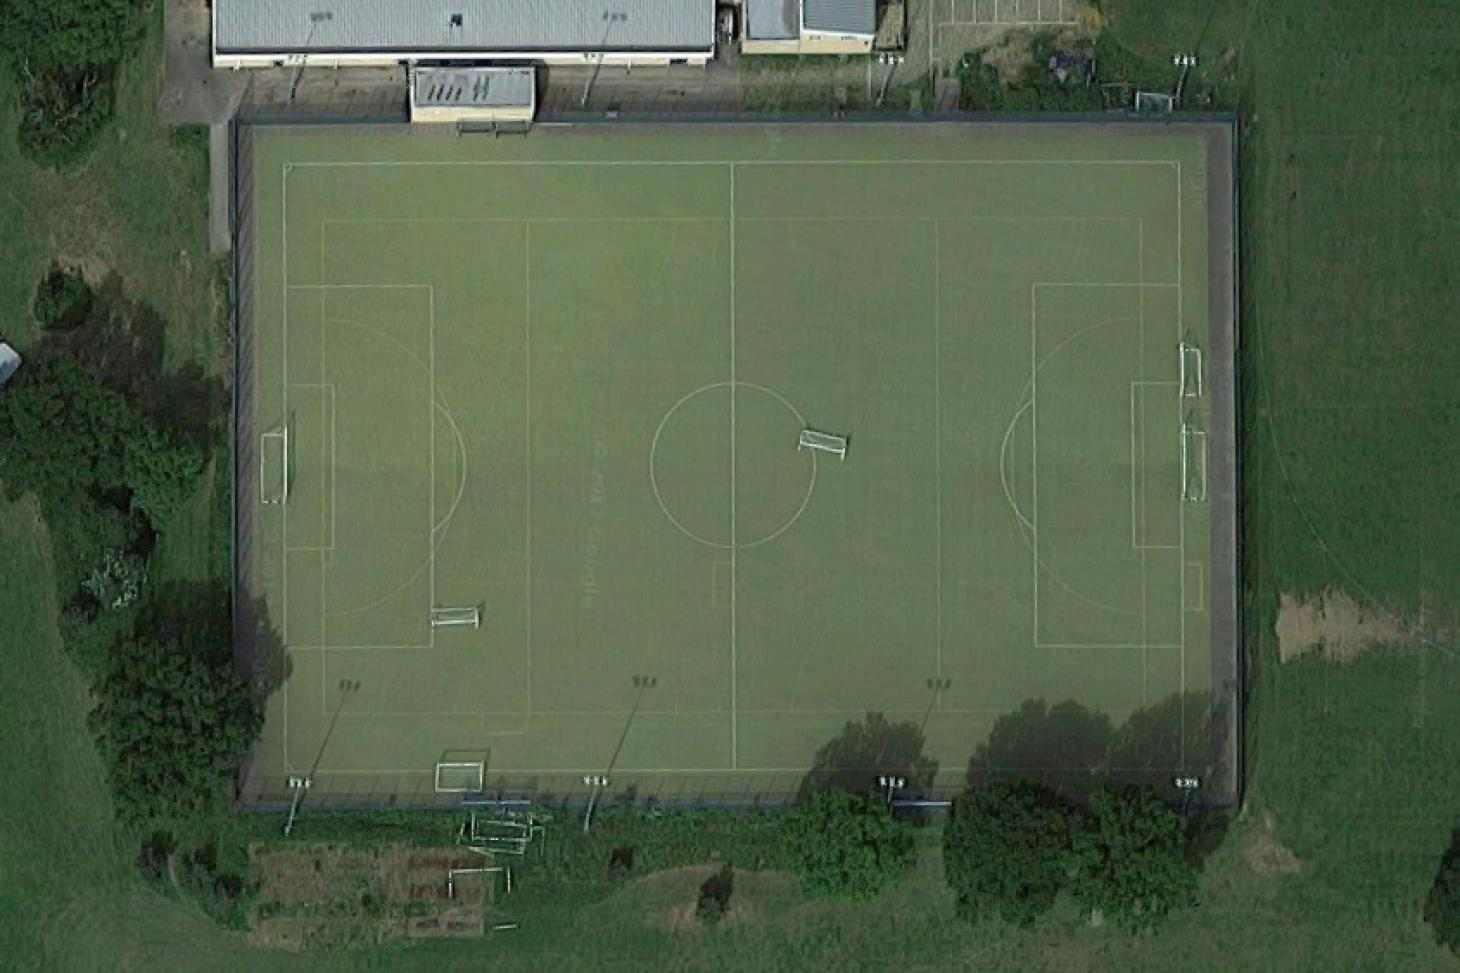 The Peter May Sports Centre Outdoor | 3G Astroturf hockey pitch